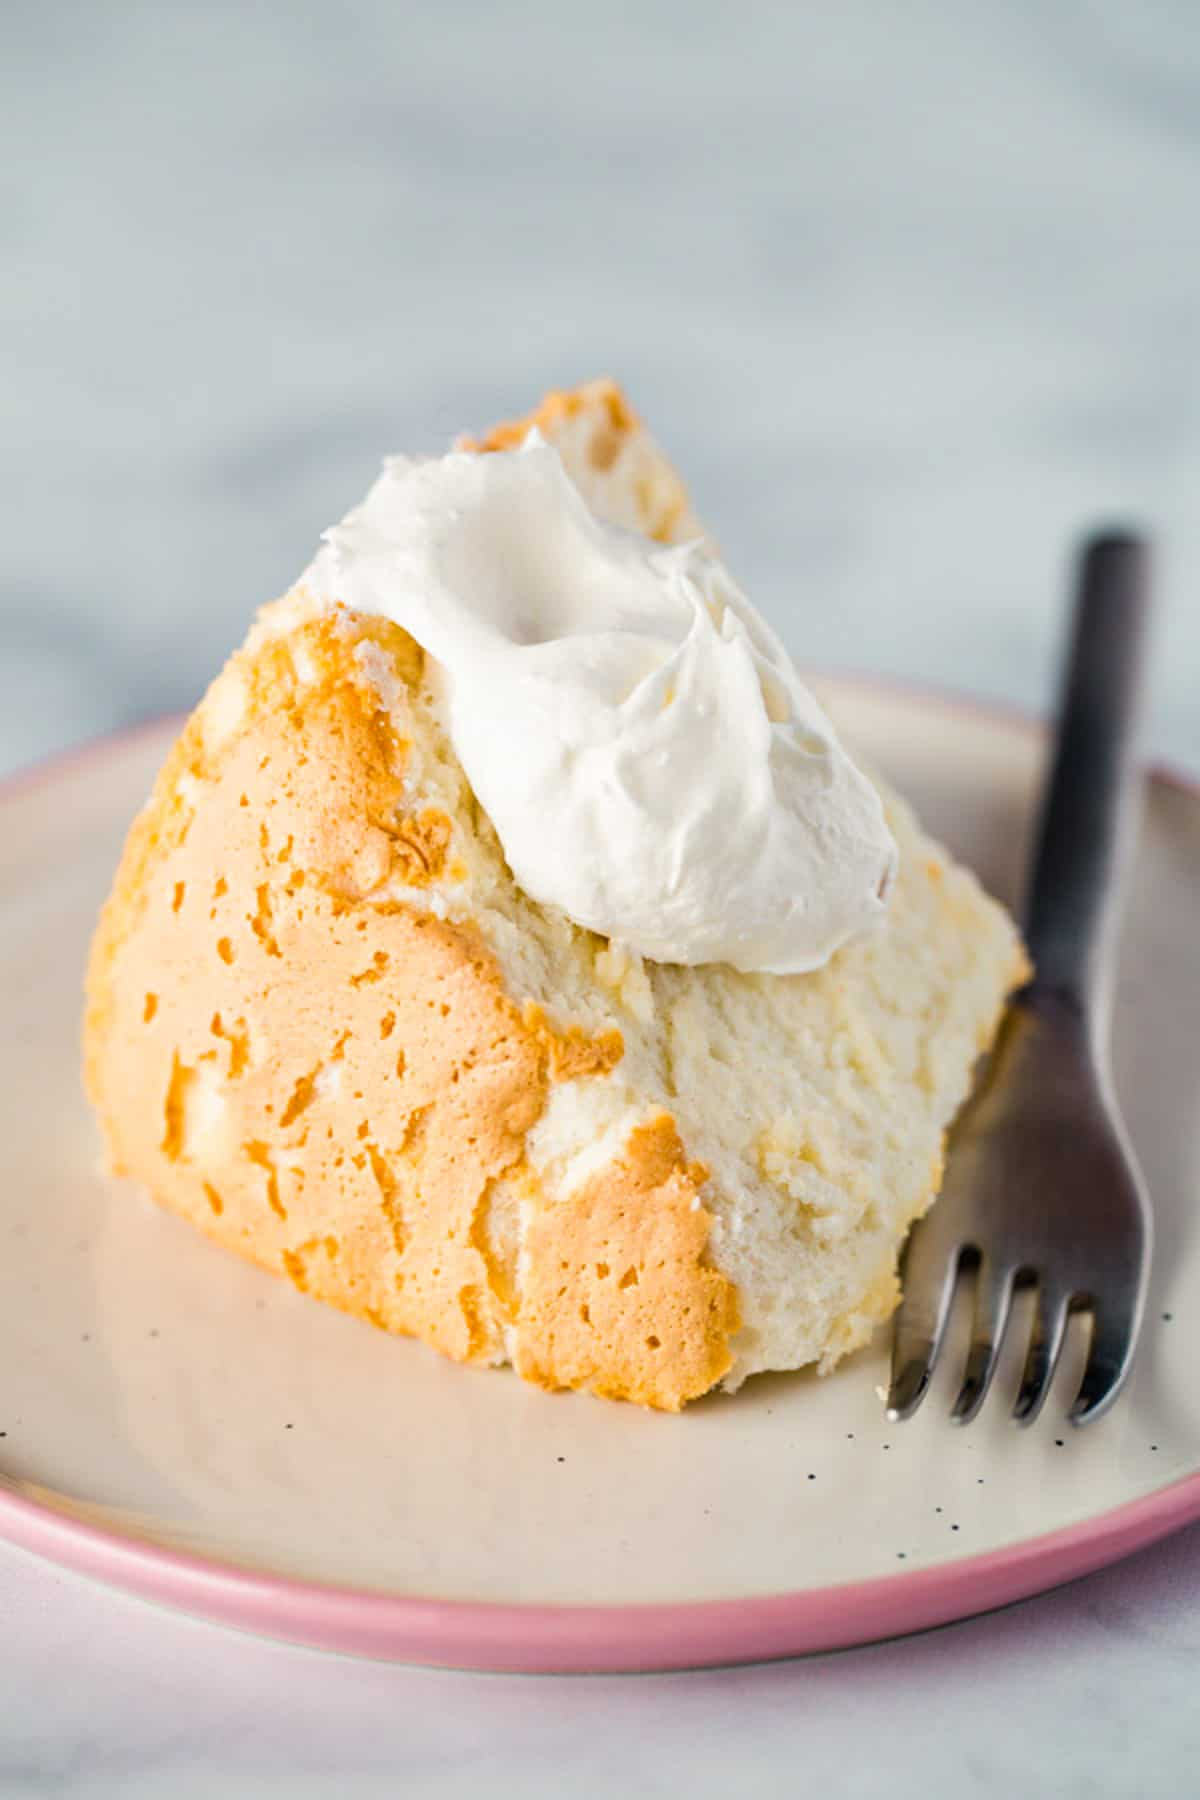 Gluten-free angel food cake with whipped cream on plate.